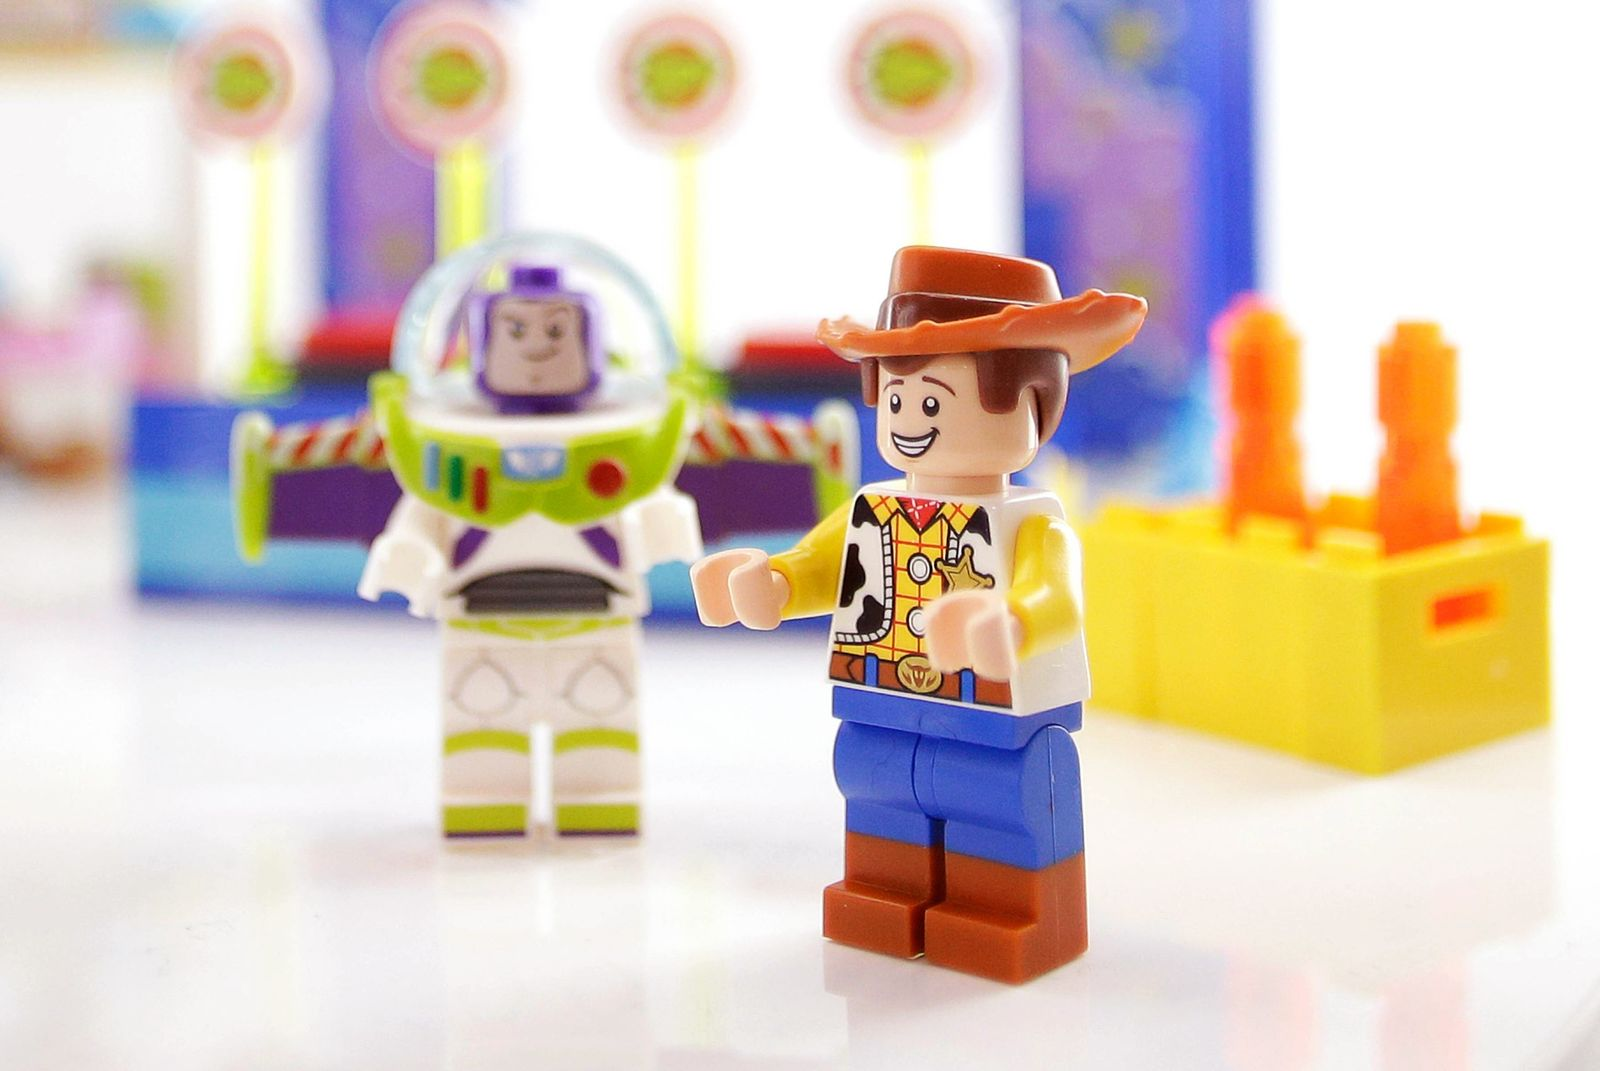 Toy Story toys from Lego are on display at the at 116th American International Toy Fair at the Jaco